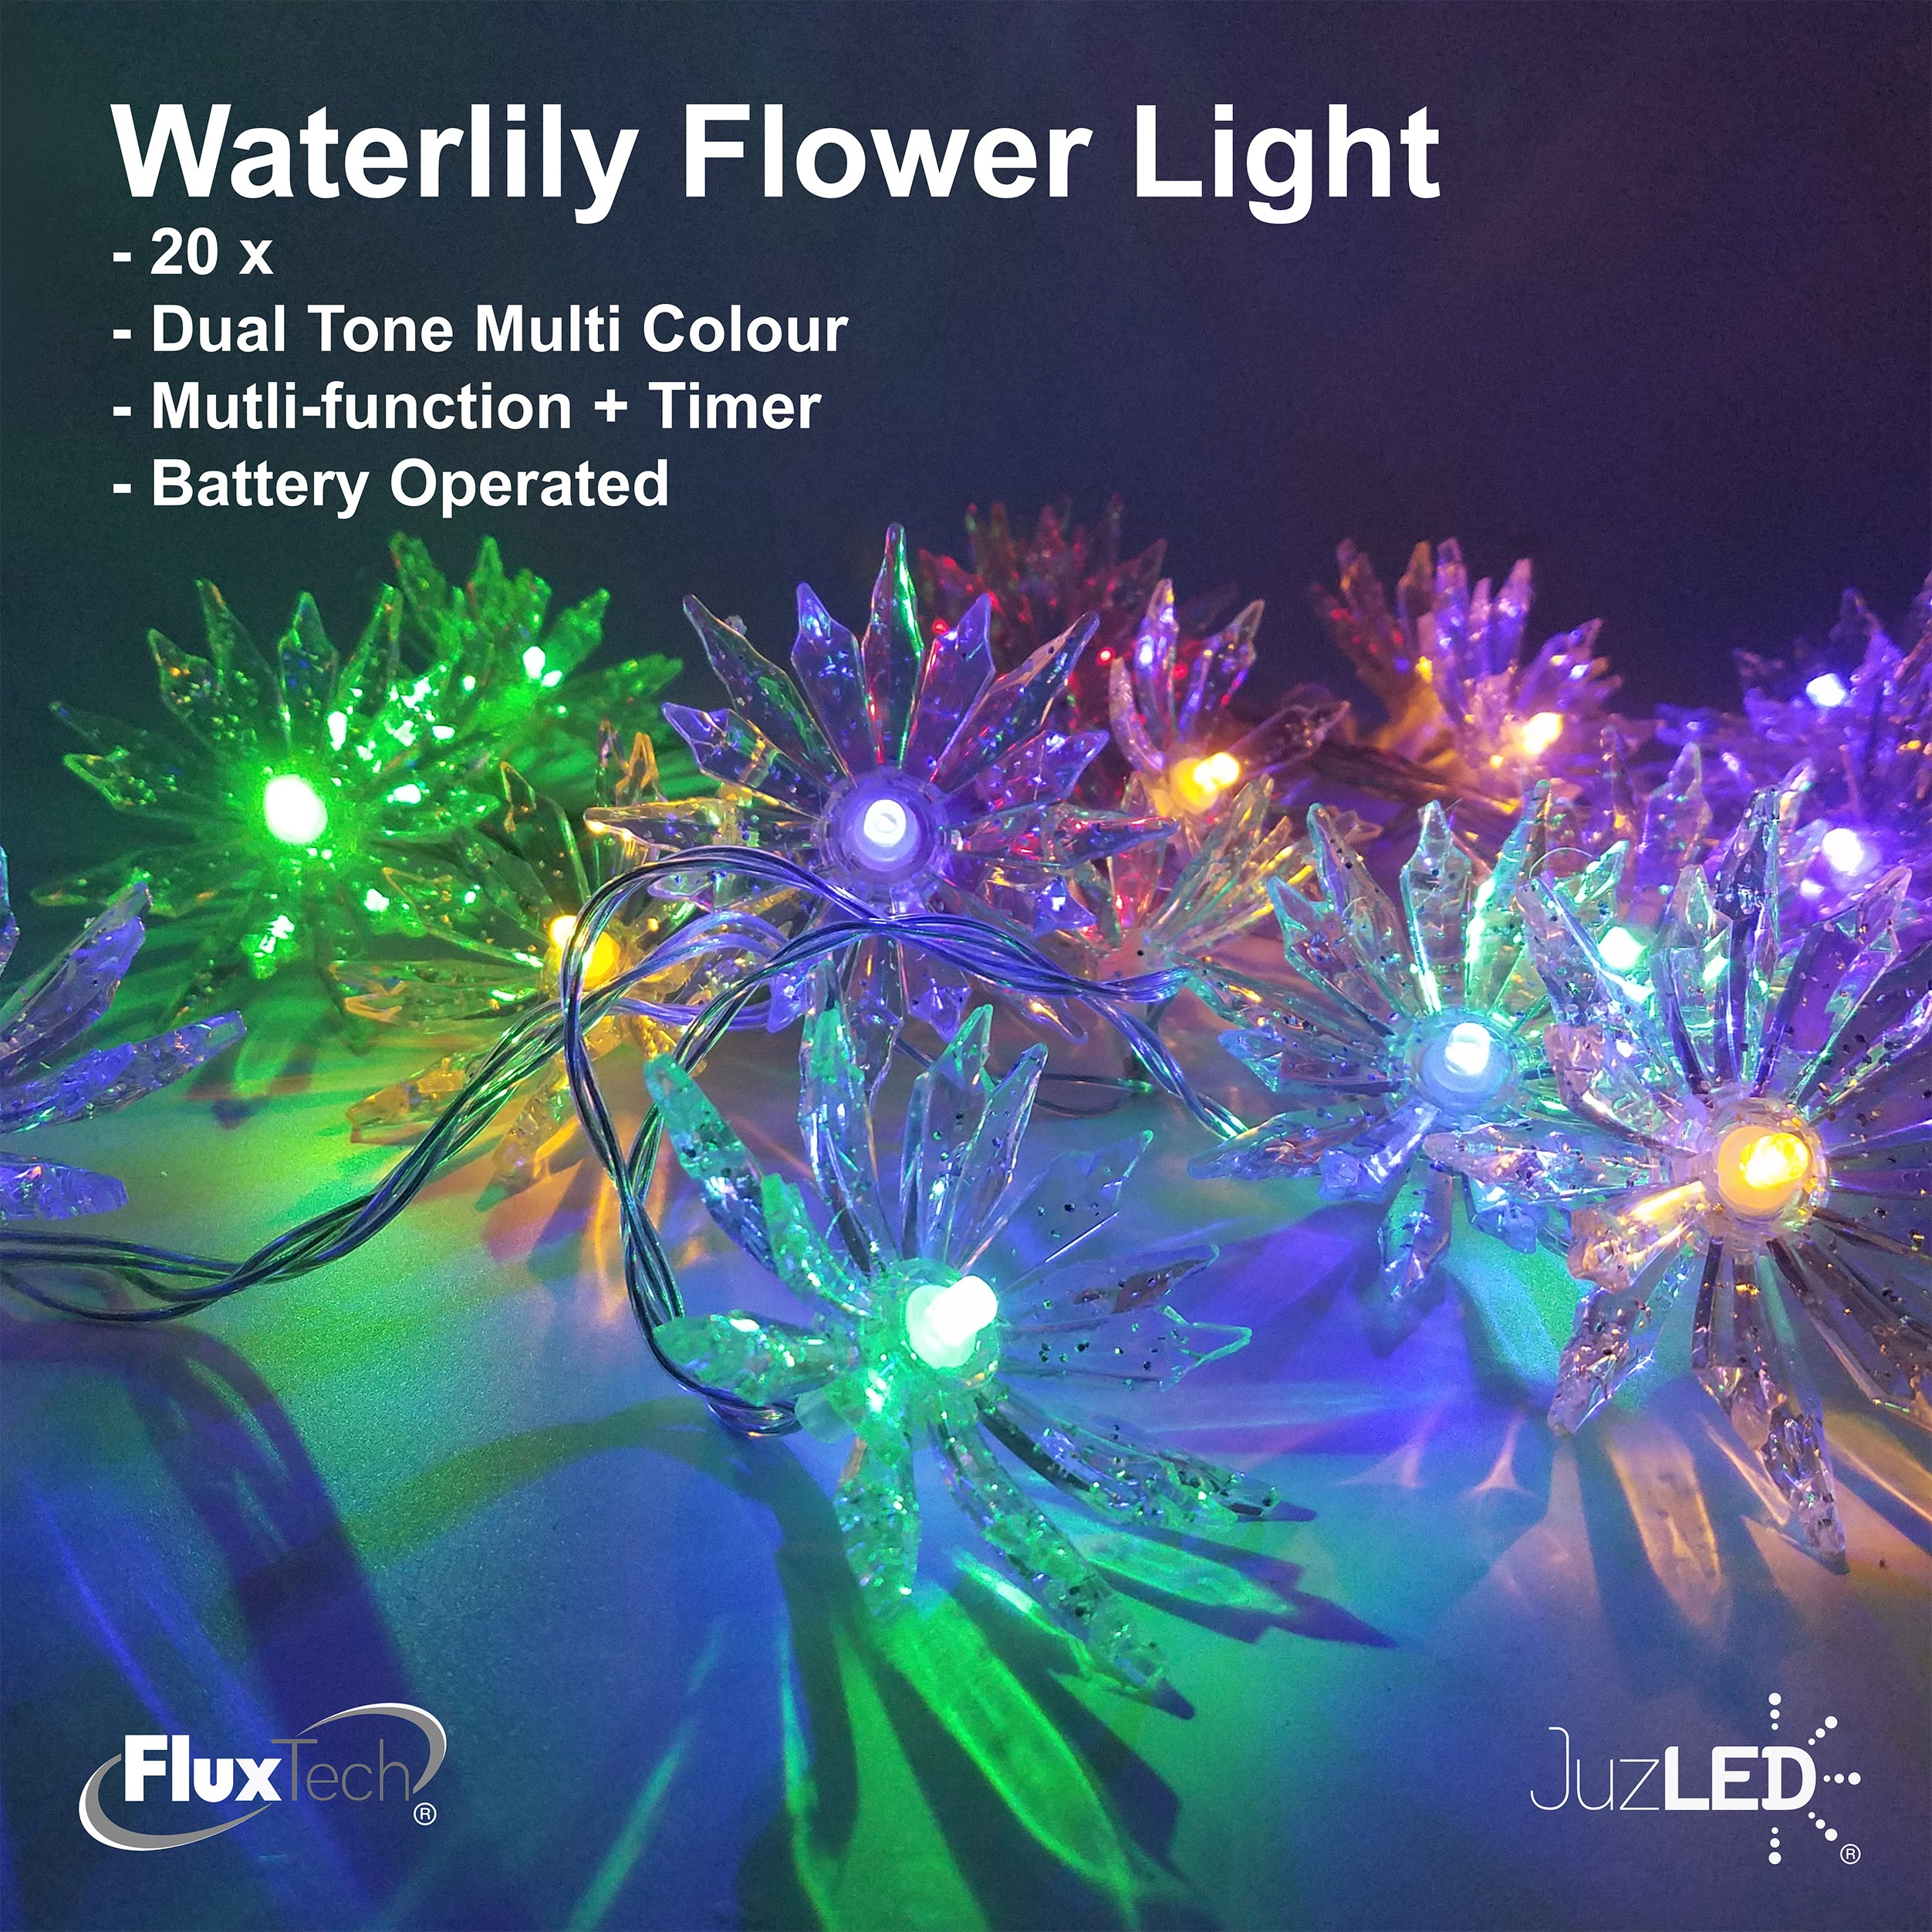 FluxTech - Sparkling Waterlily Flower 20 x Dual Colour LED String Lights by JustLED – Multi-function Effect – Timer function - Battery Operated